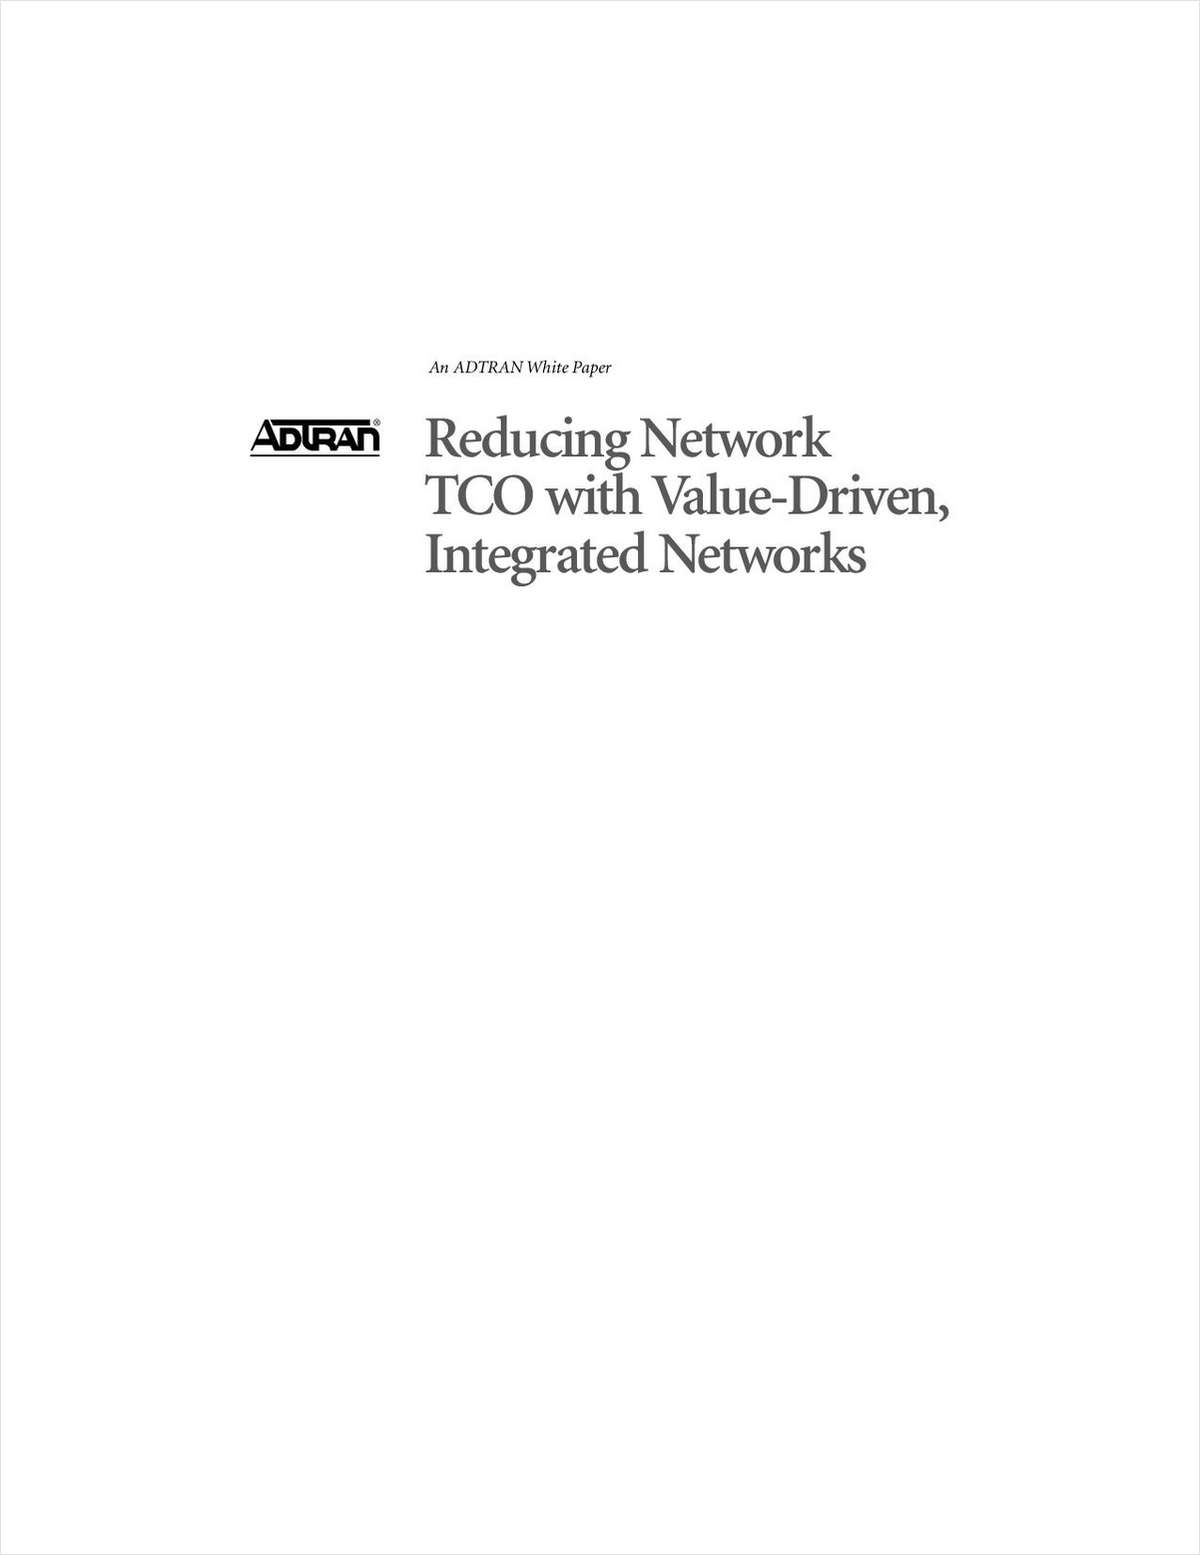 Reduce Network TCO with Value-Driven Integrated Networks